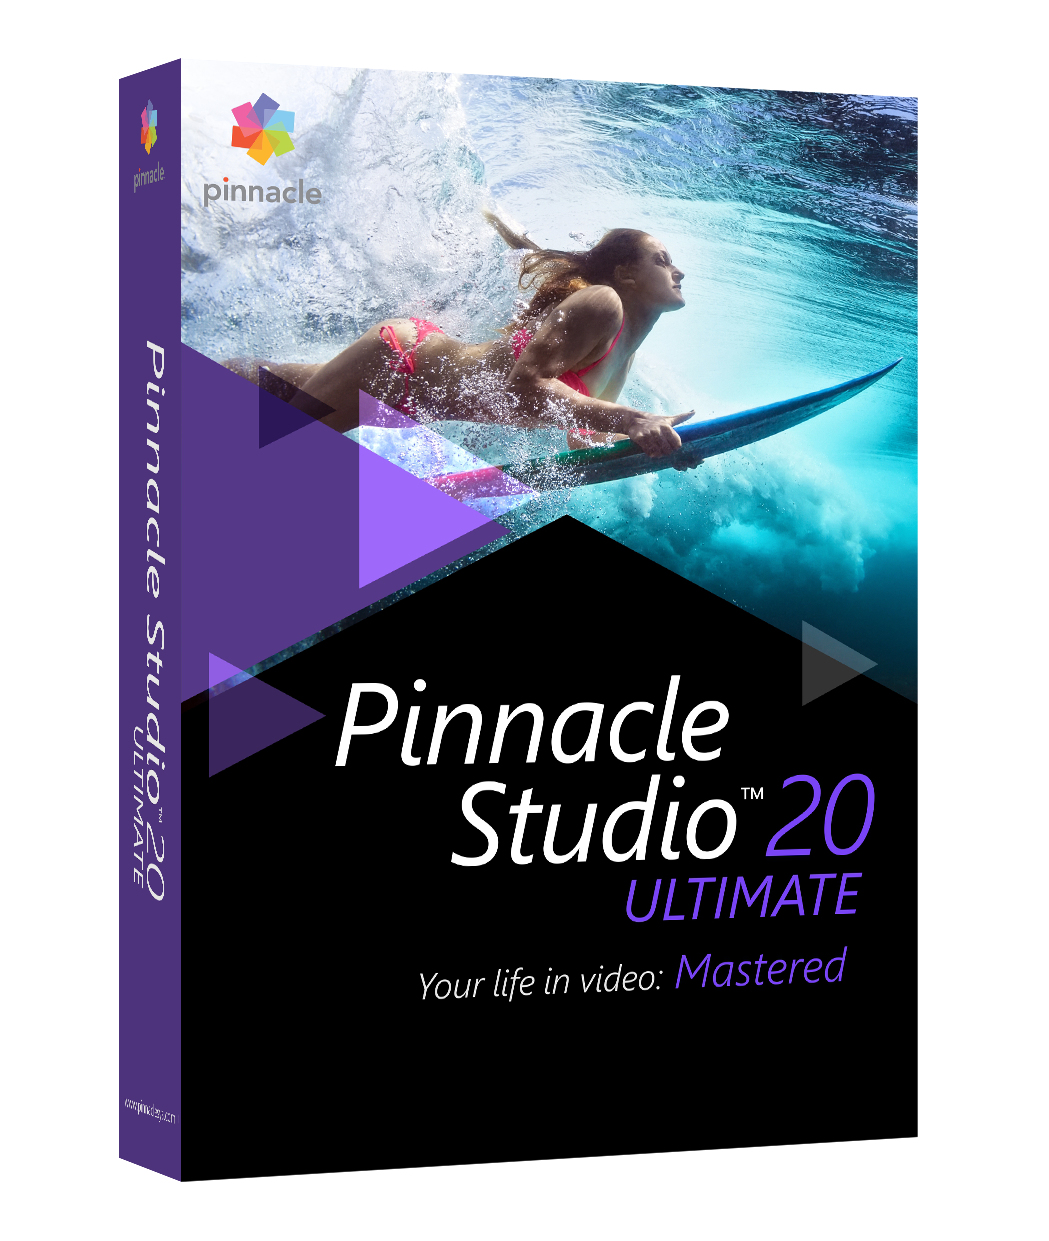 Pinnacle Studio 20 Ultimate ML - PNST20ULMLEU